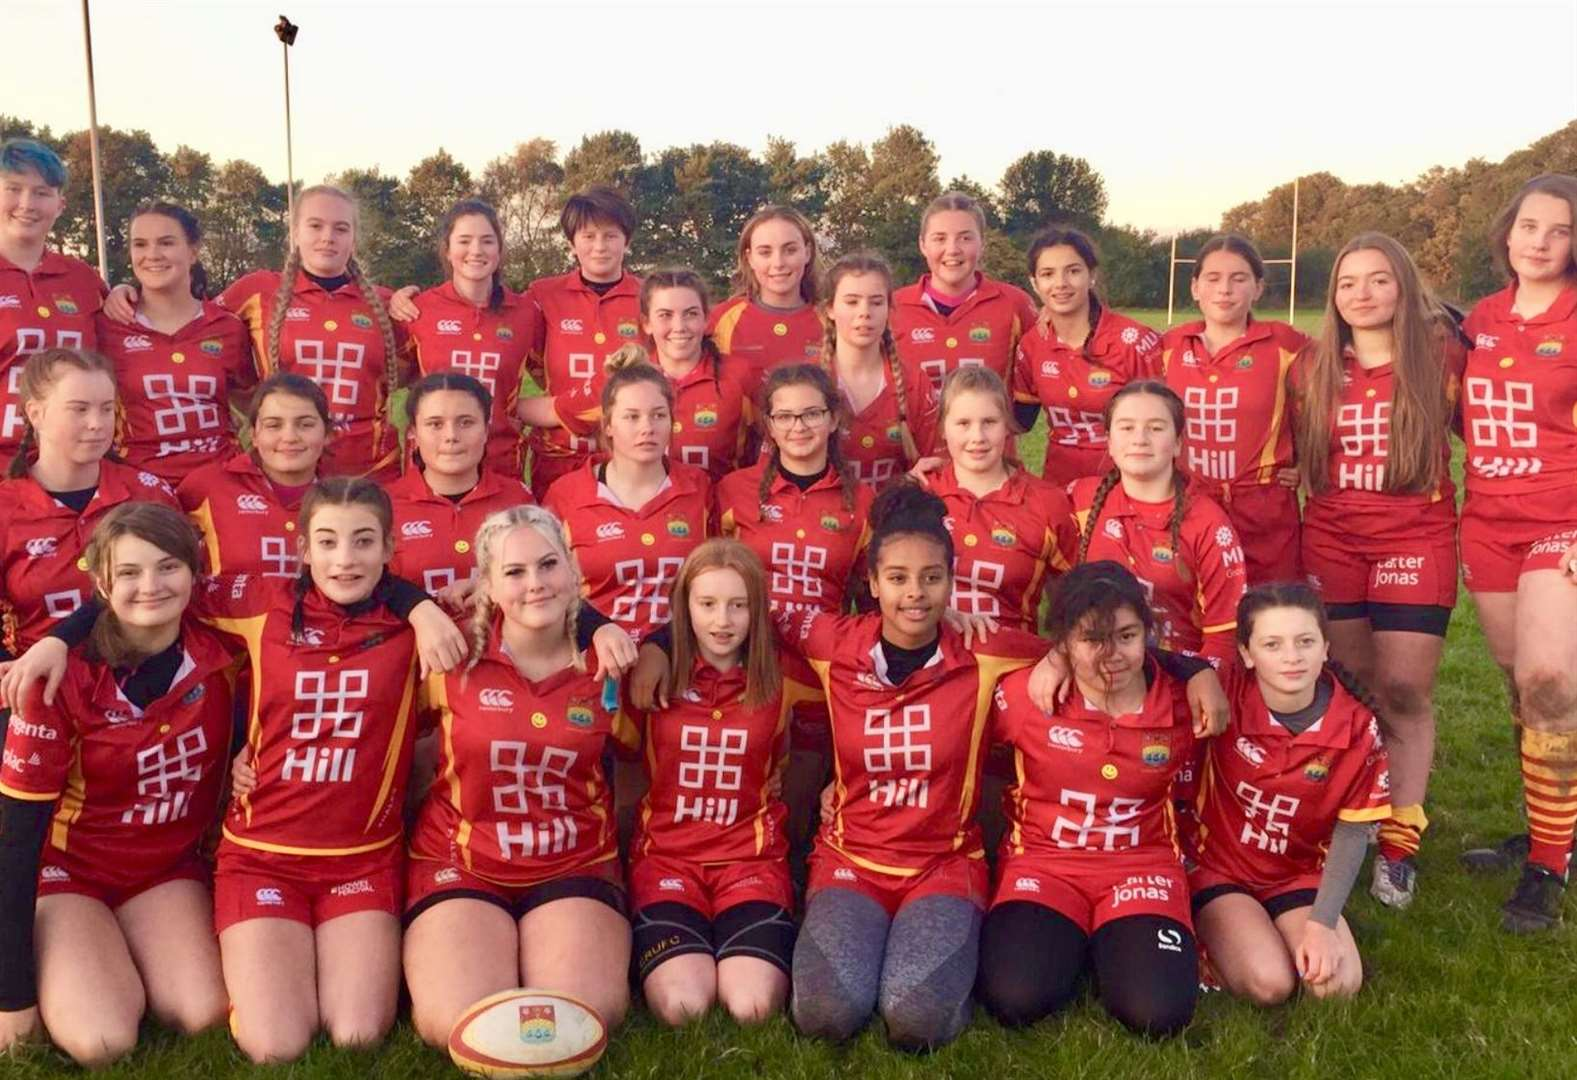 Cambridge Rubies deliver good performances at Eastern Counties Girls' Rugby Festival